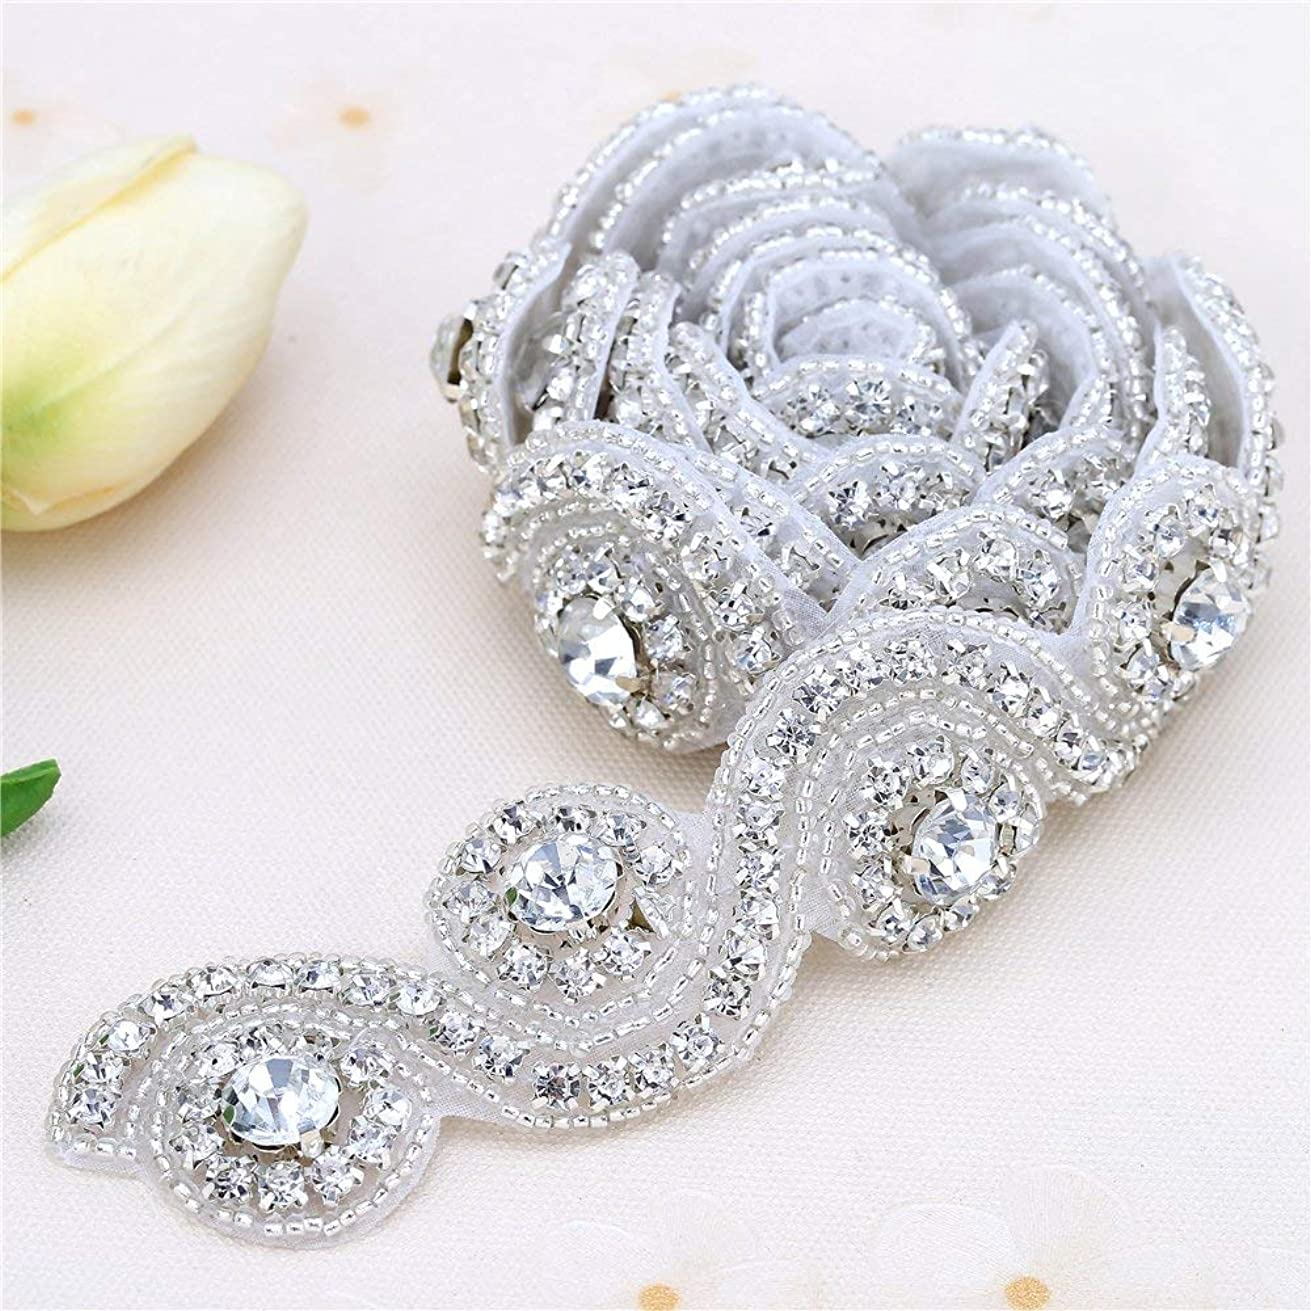 "Rhinestone crystal Applique for Wedding Dress Bride Belt and Sash by Sewing on-Silver(1.2""36"")"